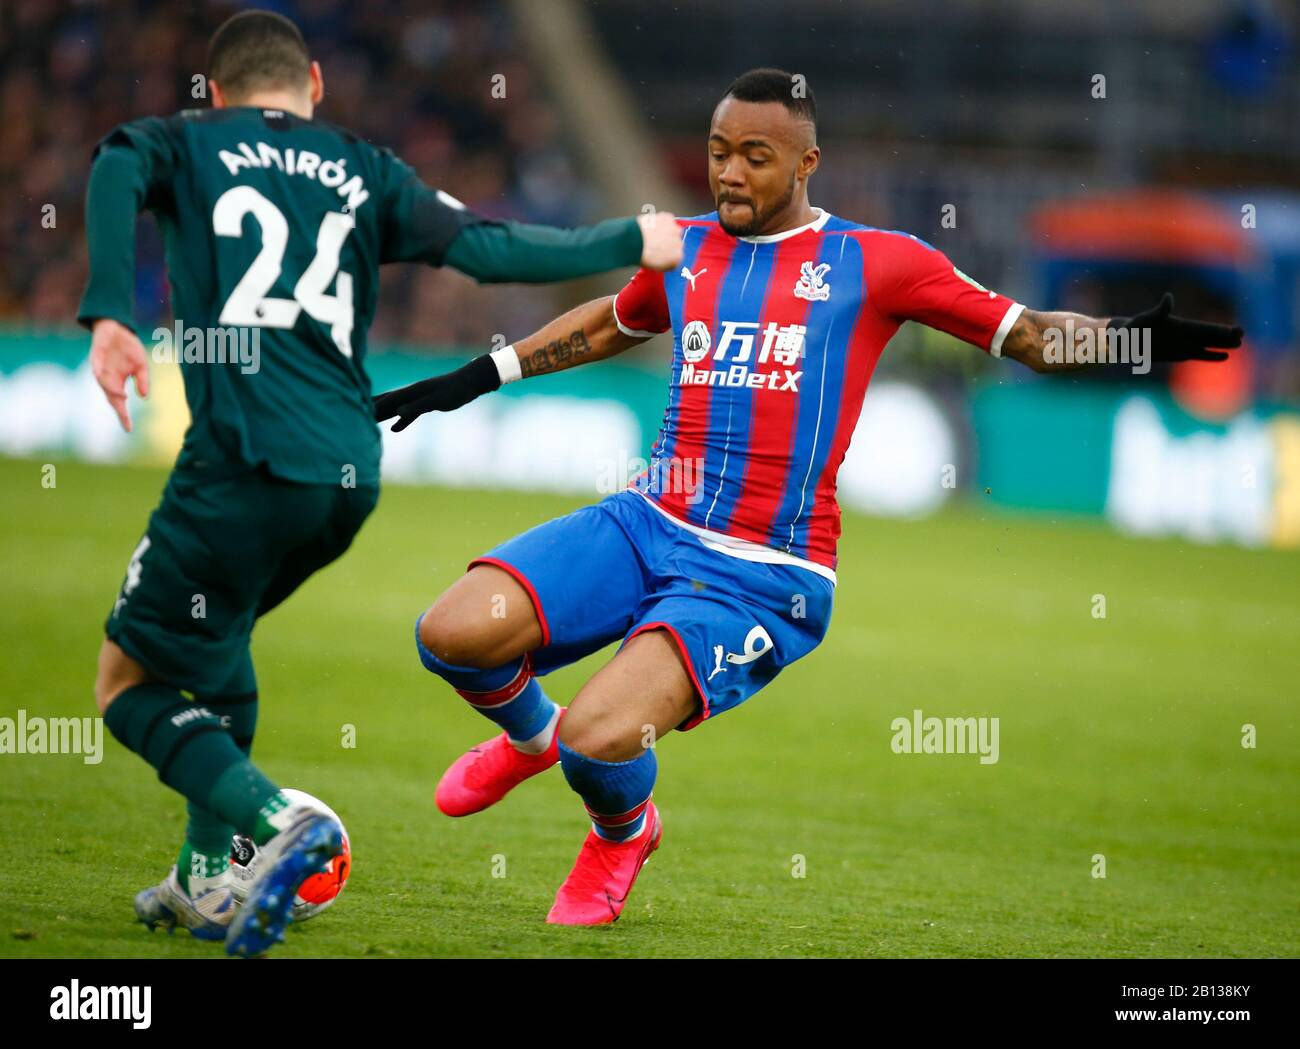 LONDON, UNITED KINGDOM. FEBRUARY 22 Crystal Palace's Jordan Ayew during English Premier League between Crystal Palace and Newcastle United at Selhurst Park Stadium, London, England on 22 February 2020 Credit: Action Foto Sport/Alamy Live News Stock Photo